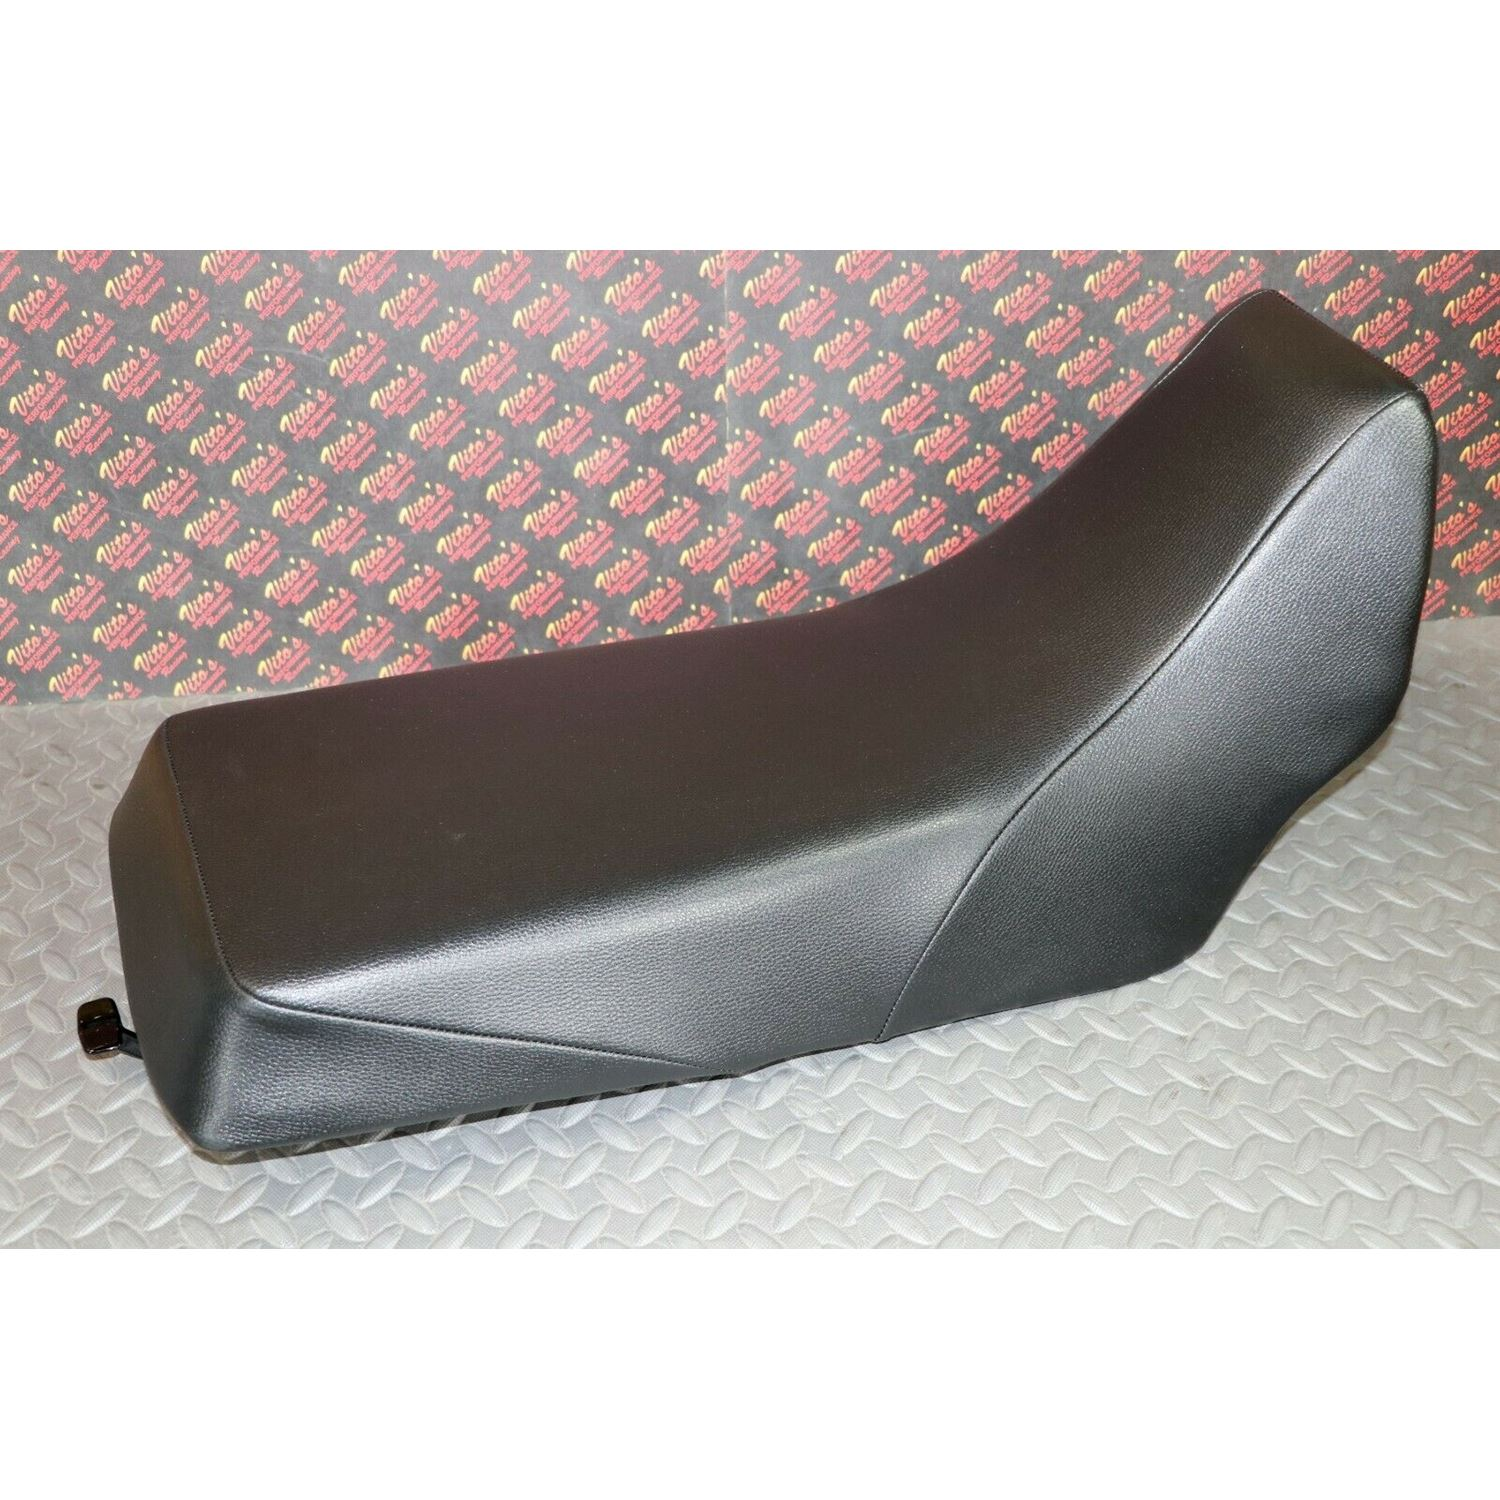 NEW Complete seat 1987-2006 Yamaha Banshee cover l